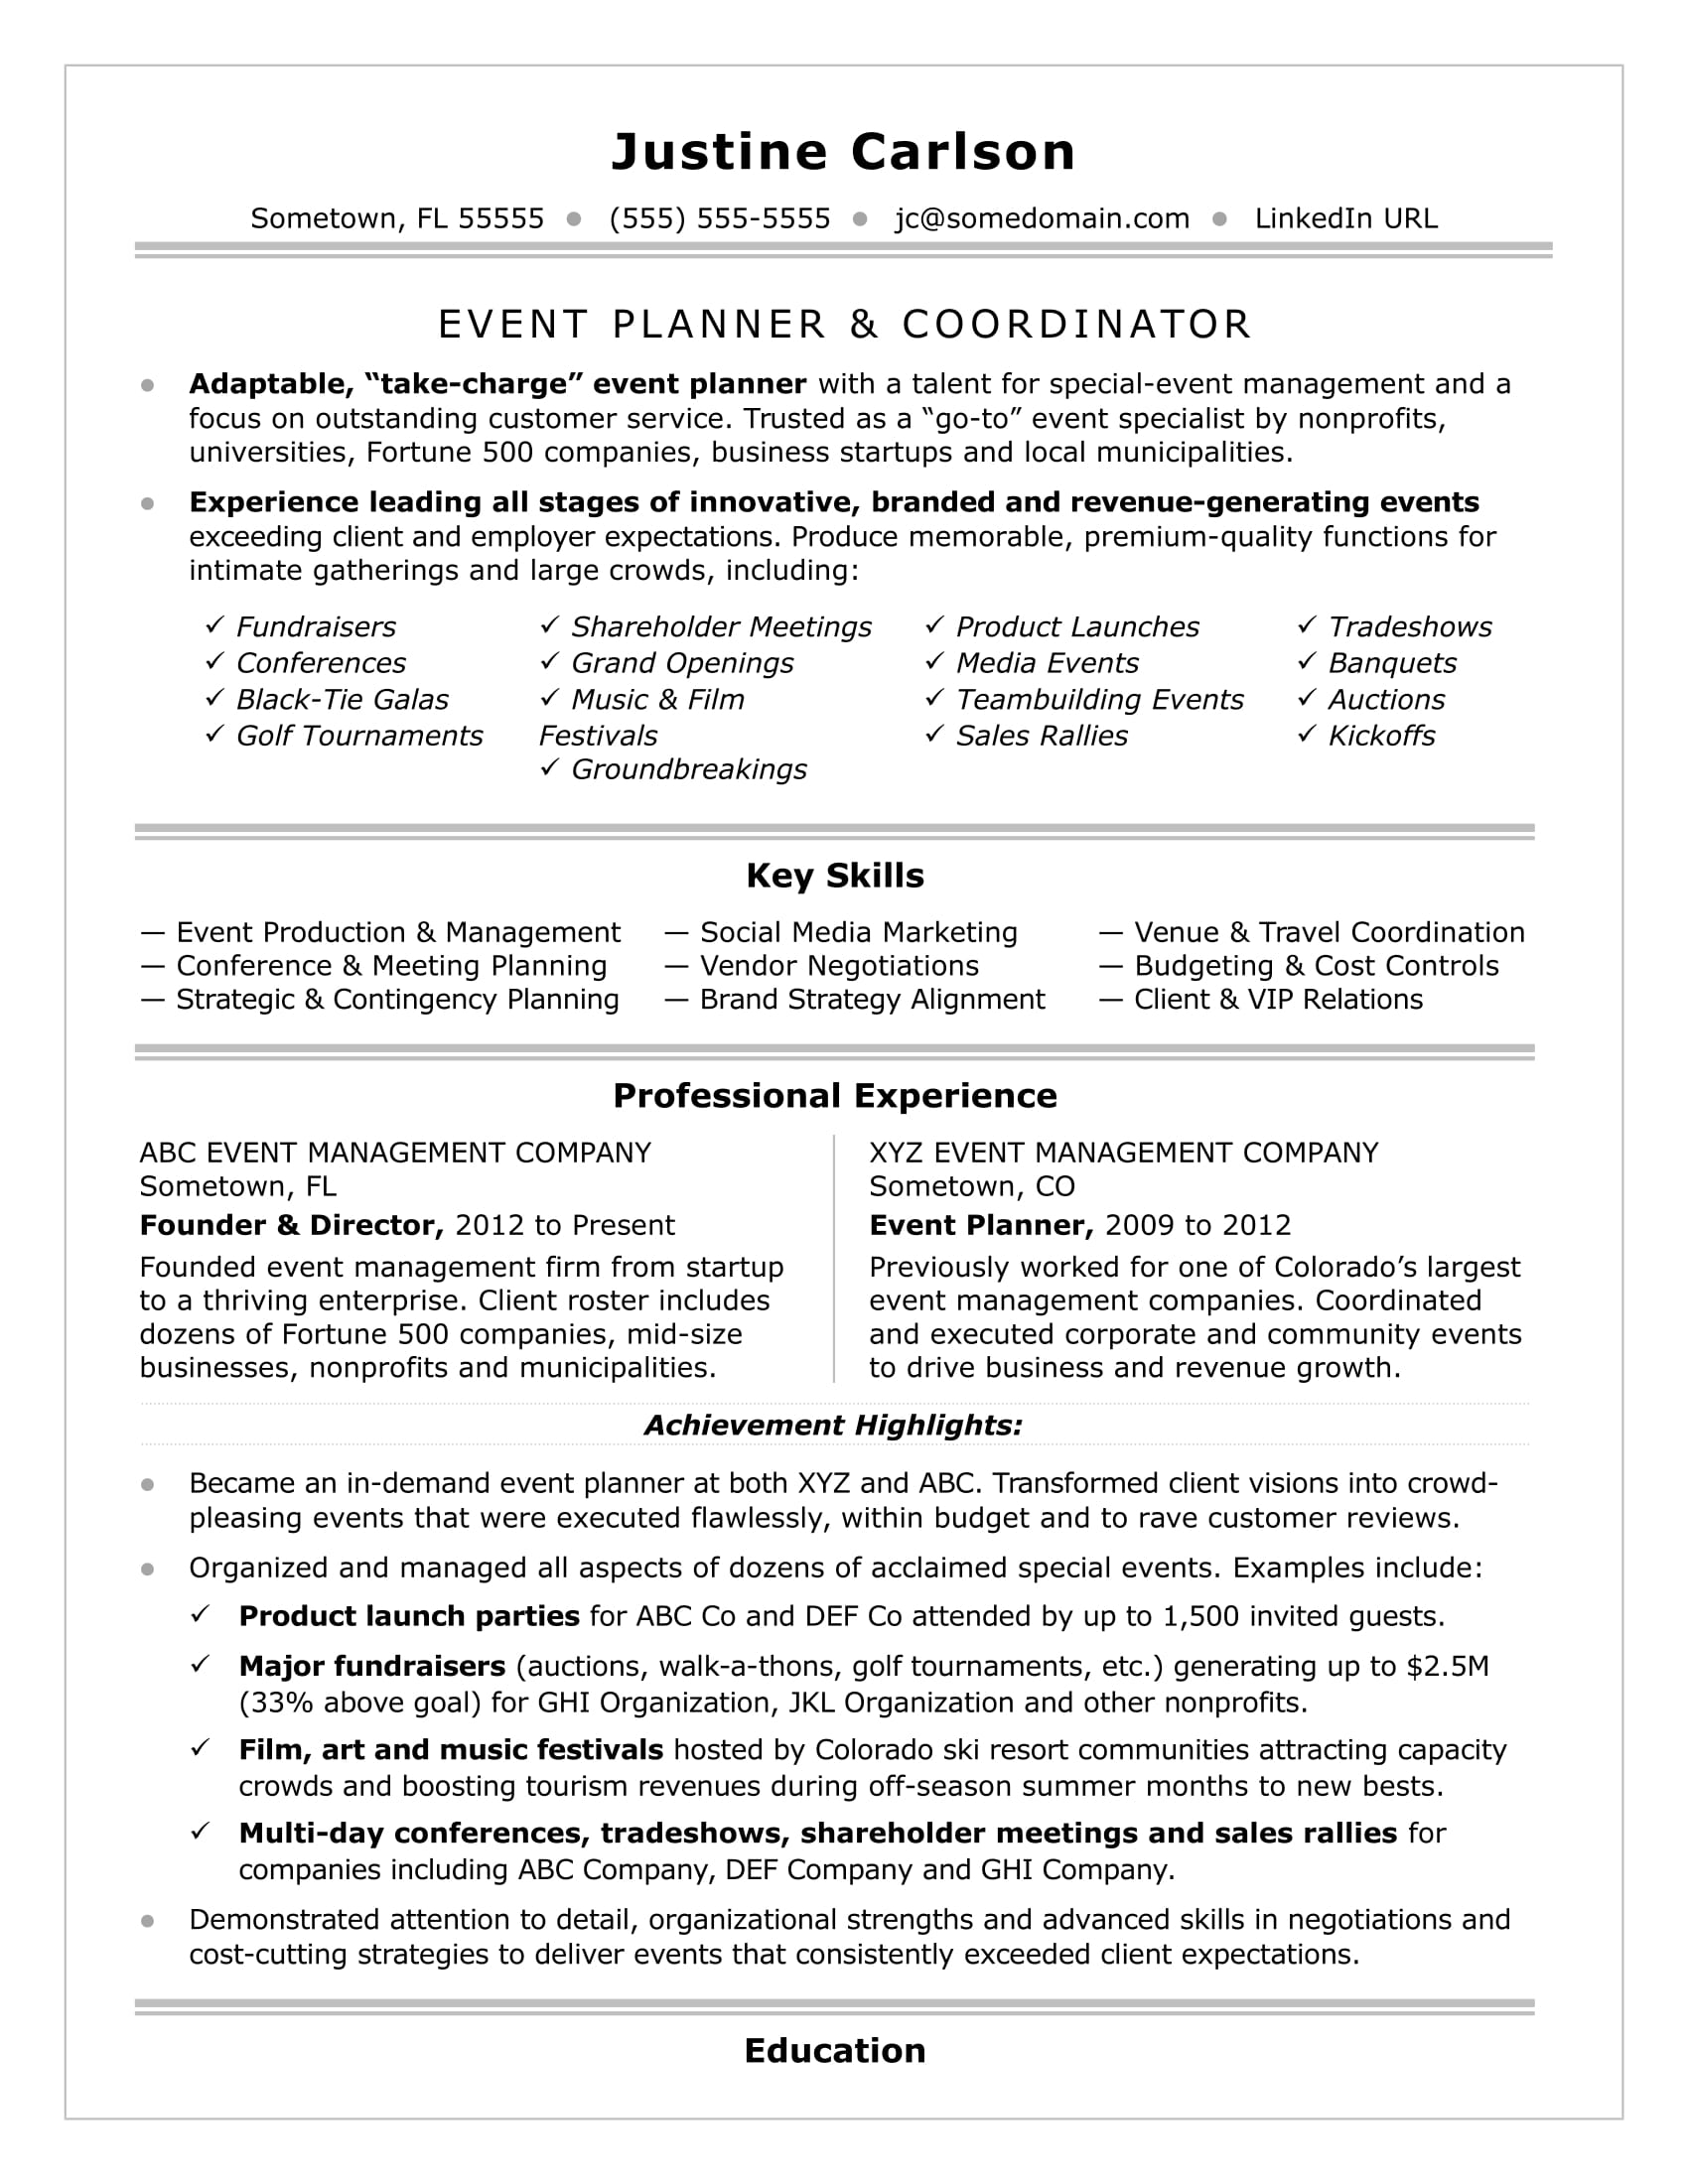 Event Coordinator Resume Sample. administrative assistant new sample resume for administrative assistant. classic resume template. us recommended professional resume template simple. builder resumes. resume template 4 clean resume template